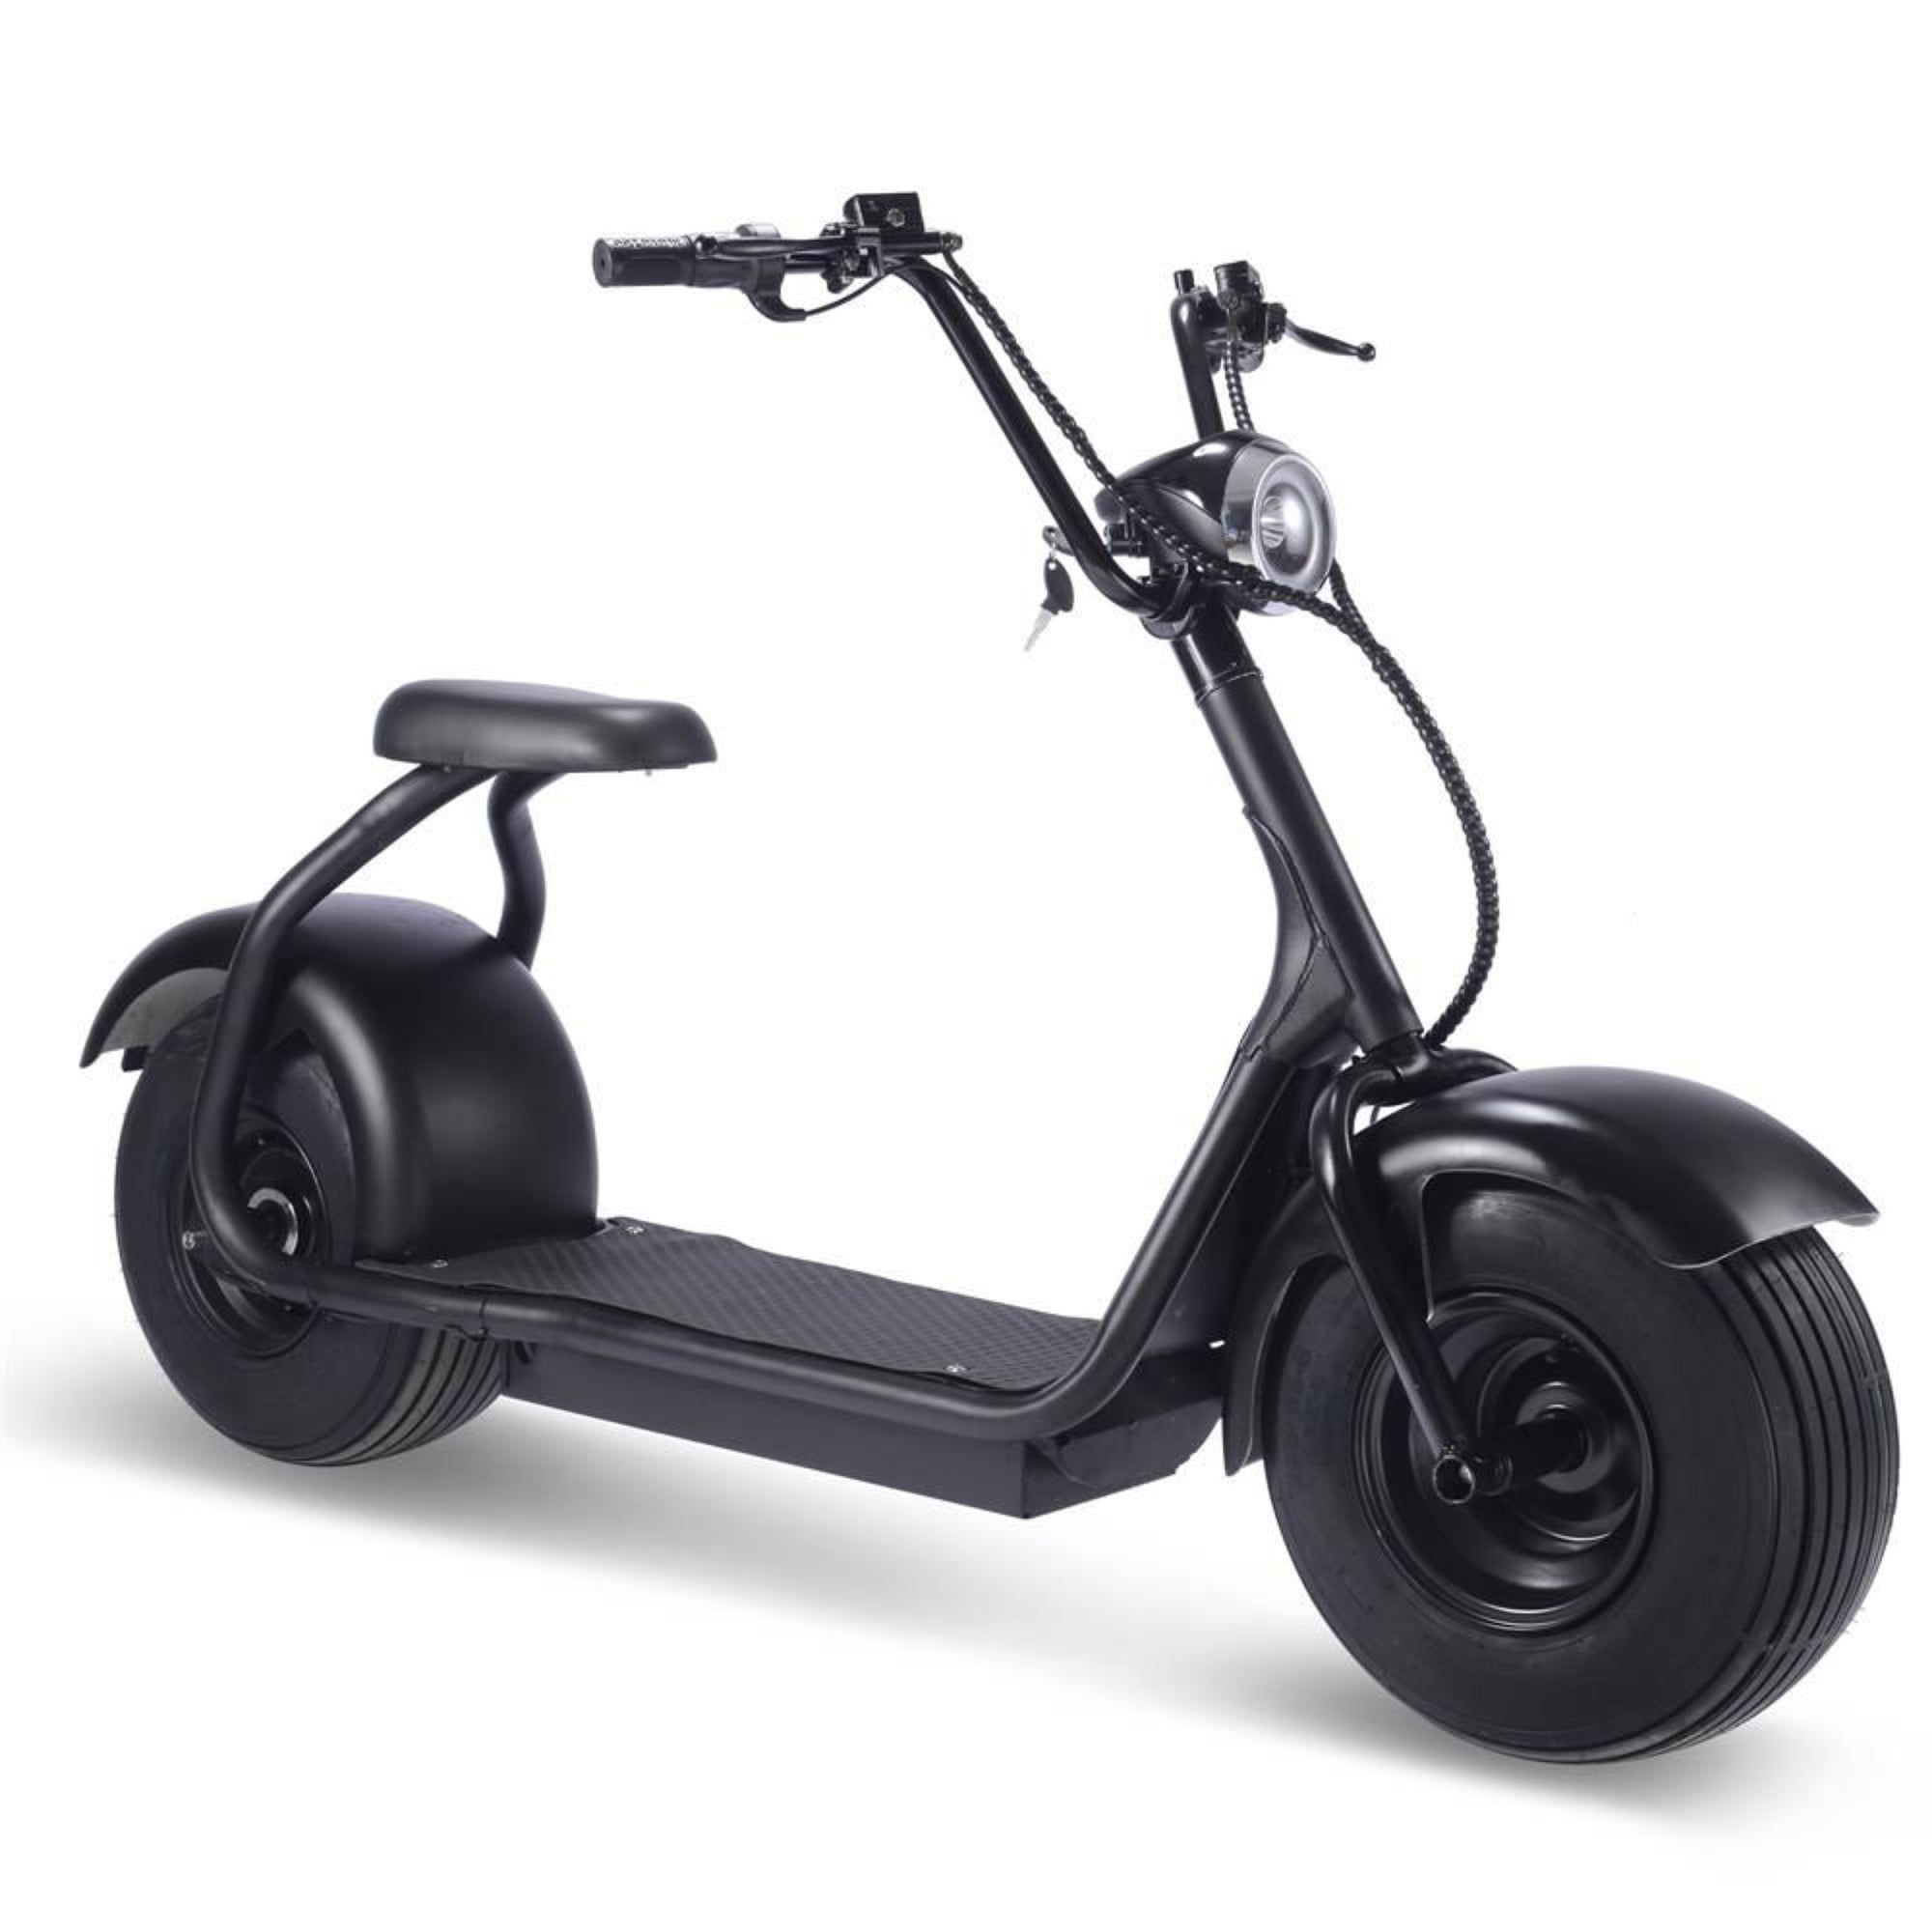 Fat Tire 60v 18ah 2000w Lithium Electric Scooter Black Battery Operated Riding Toy Mototec